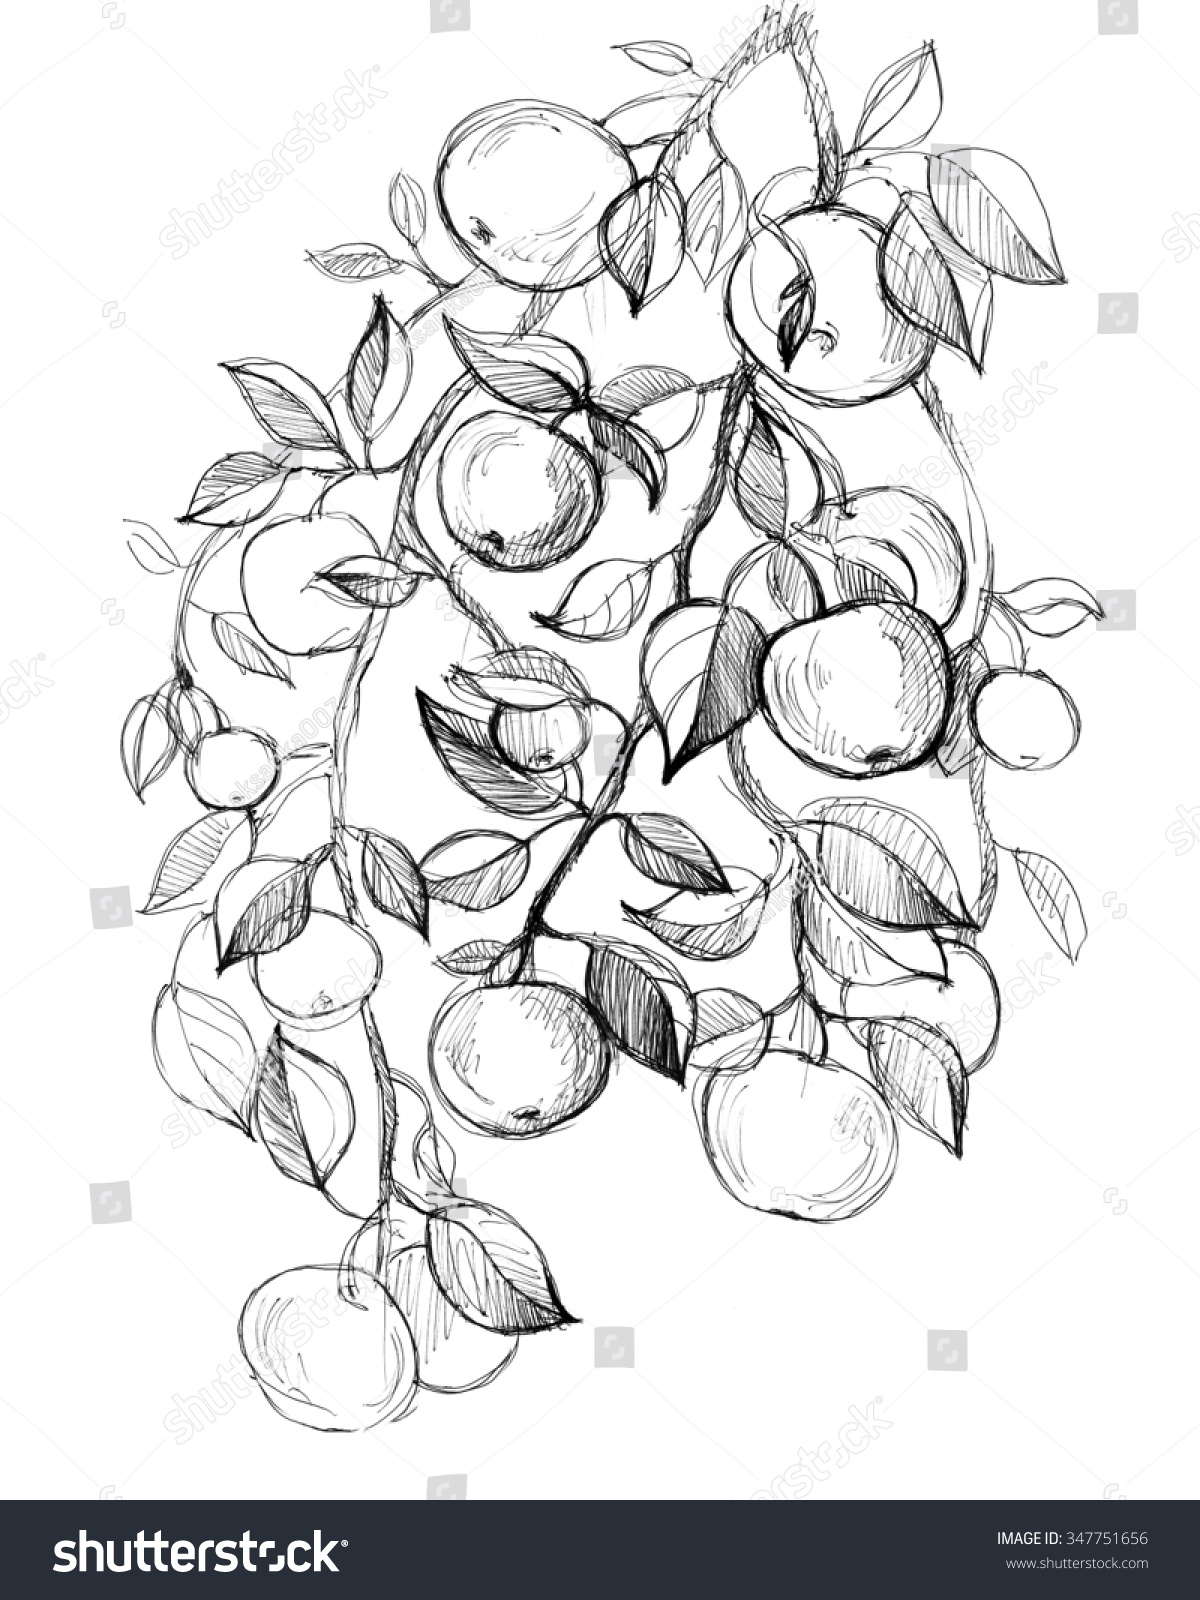 Apple Tree Fruits Leaves Hand Drawn Stock Illustration